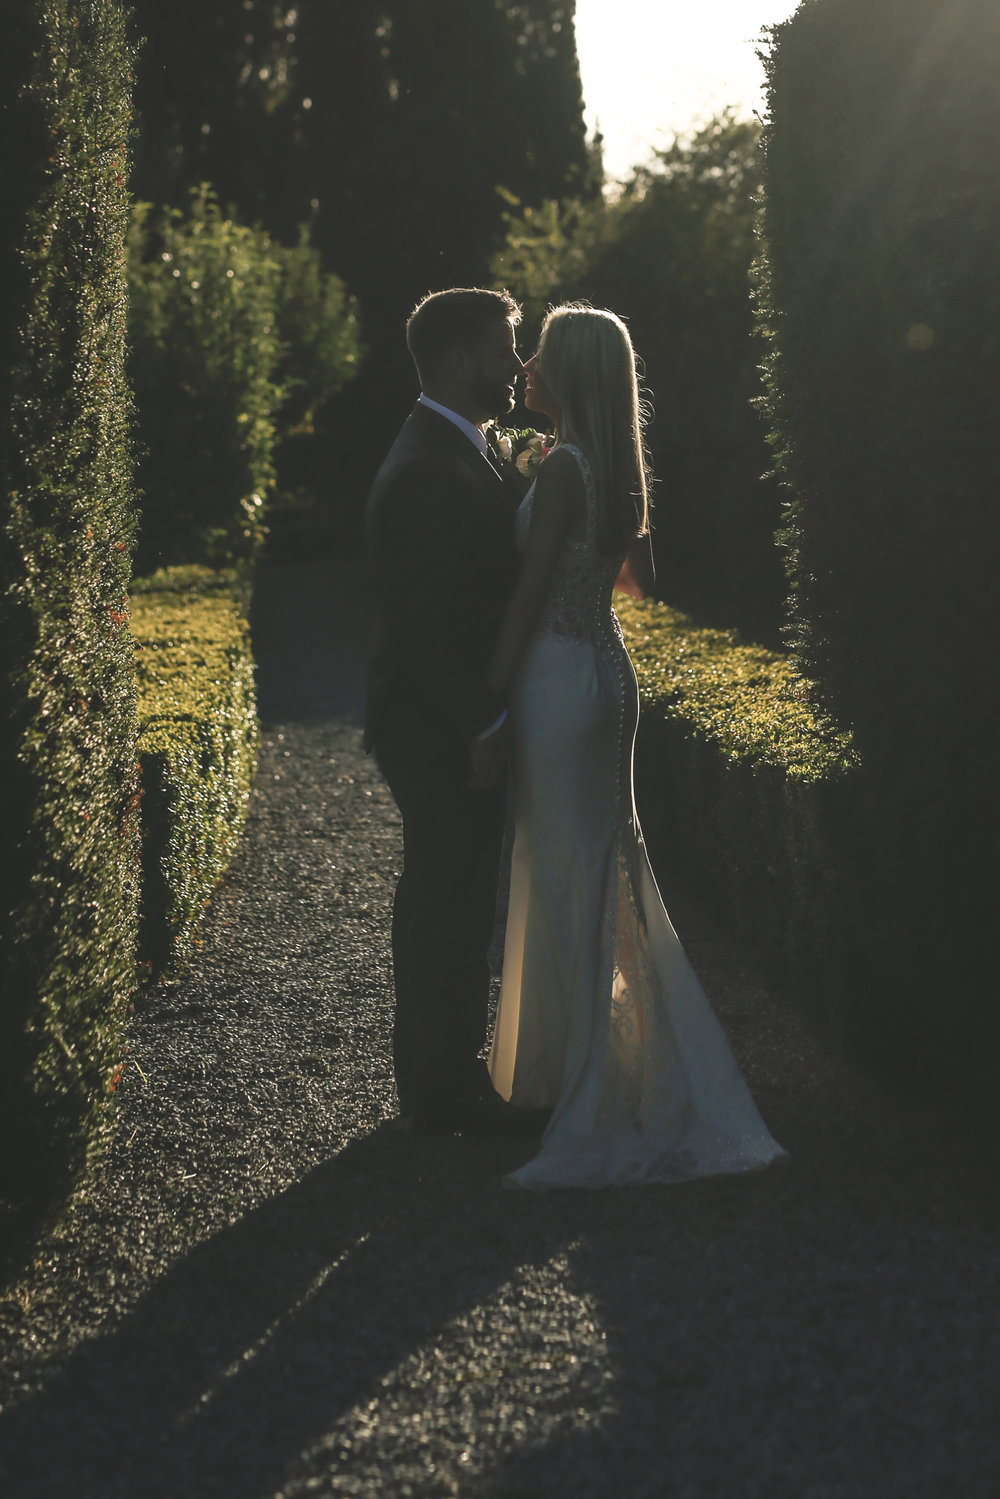 kilkea_castle_wedding_photographer_goldenmoments_044.jpg